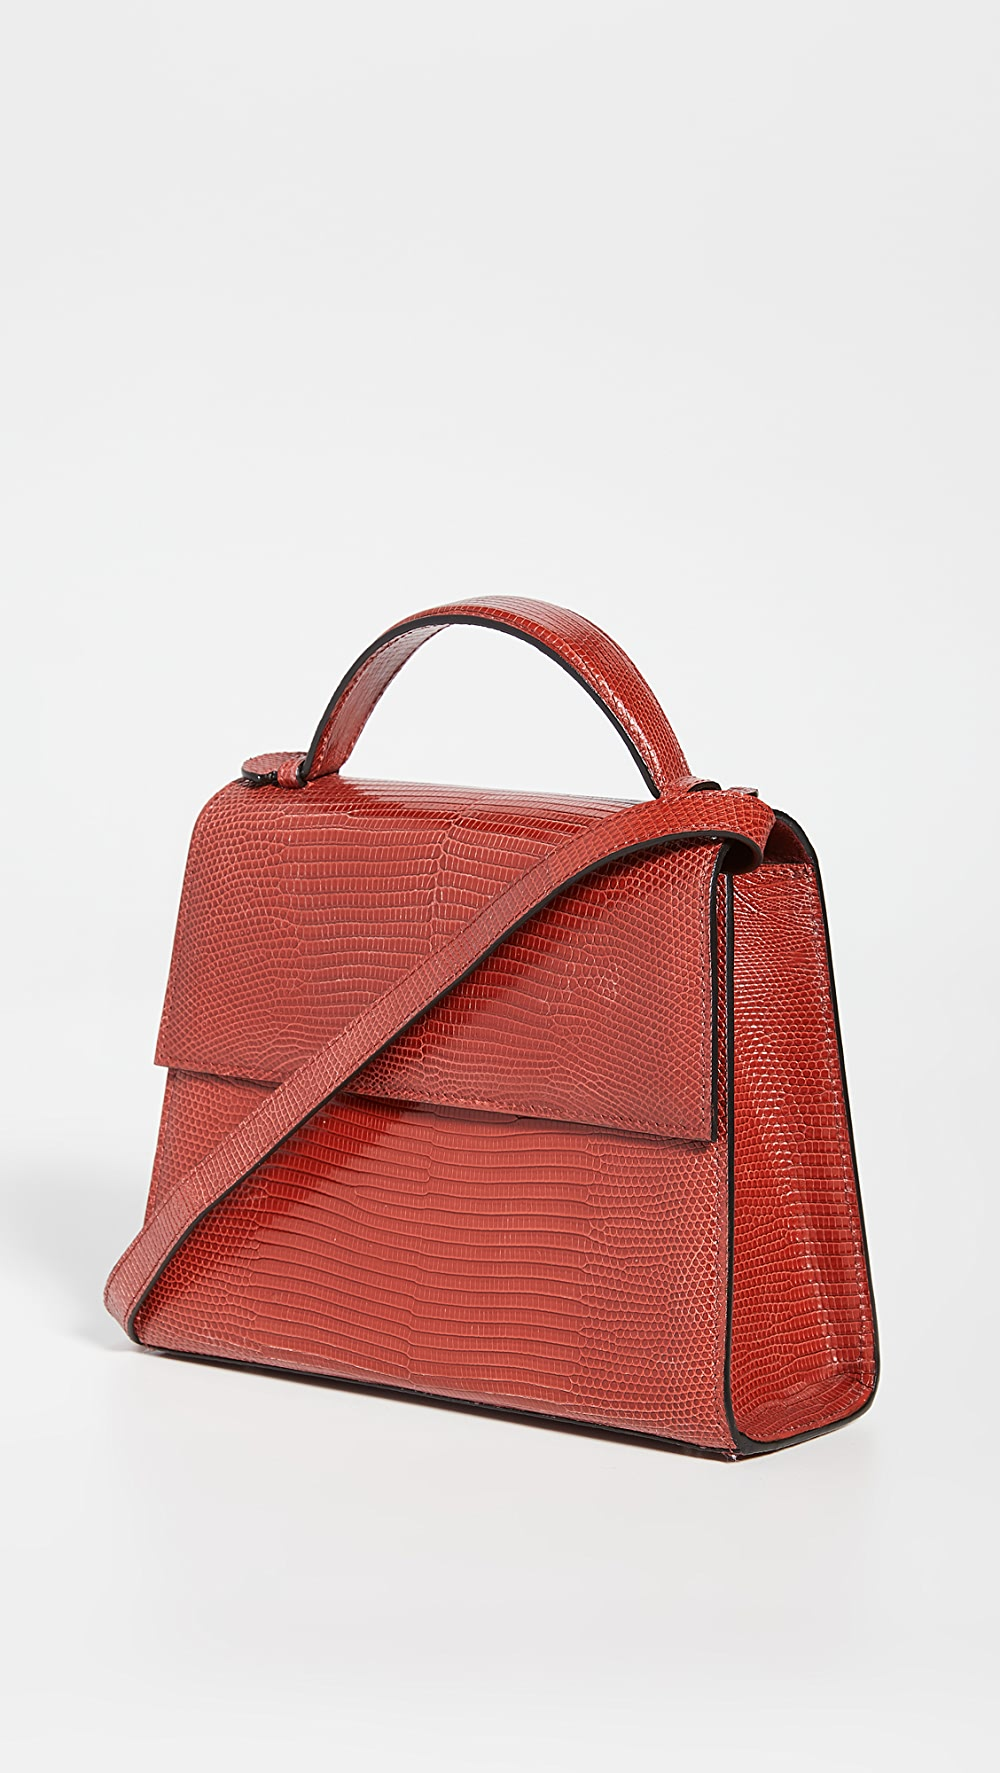 2019 Latest Design Hunting Season - Medium Top Handle Bag To Be Renowned Both At Home And Abroad For Exquisite Workmanship, Skillful Knitting And Elegant Design